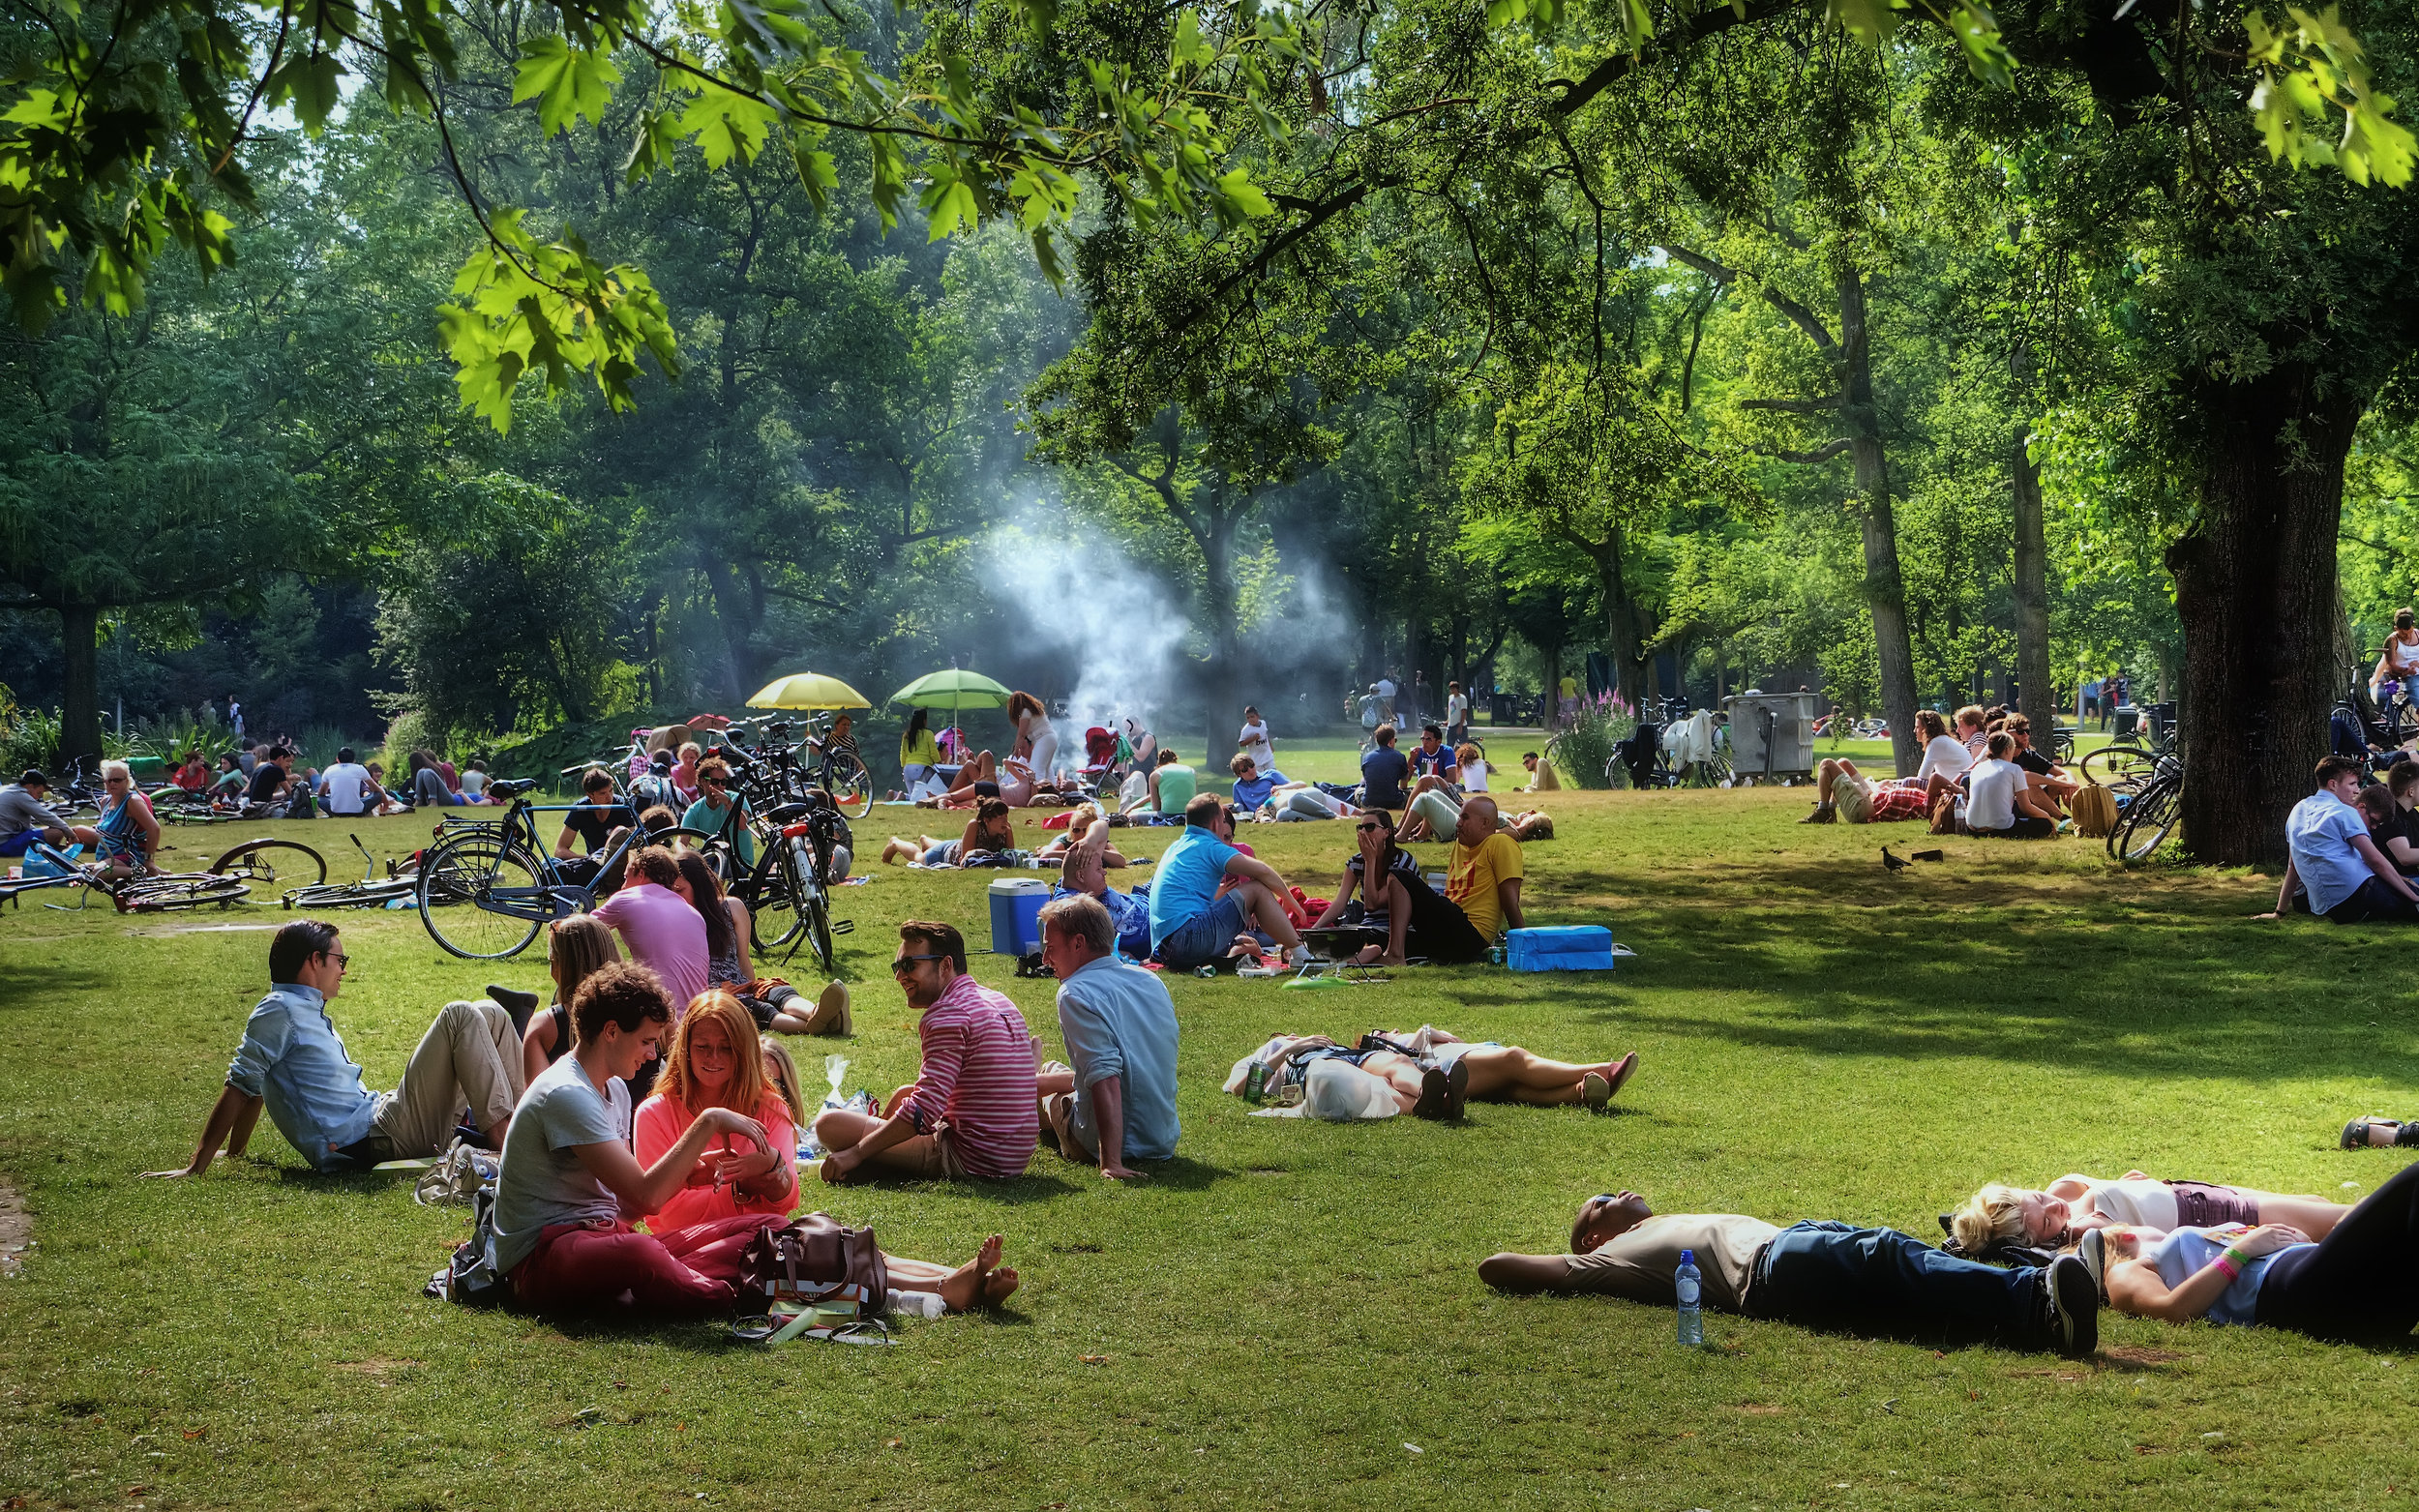 Chilling in the Vondel park is one of the most relaxing things to do in Amsterdam in the summer.